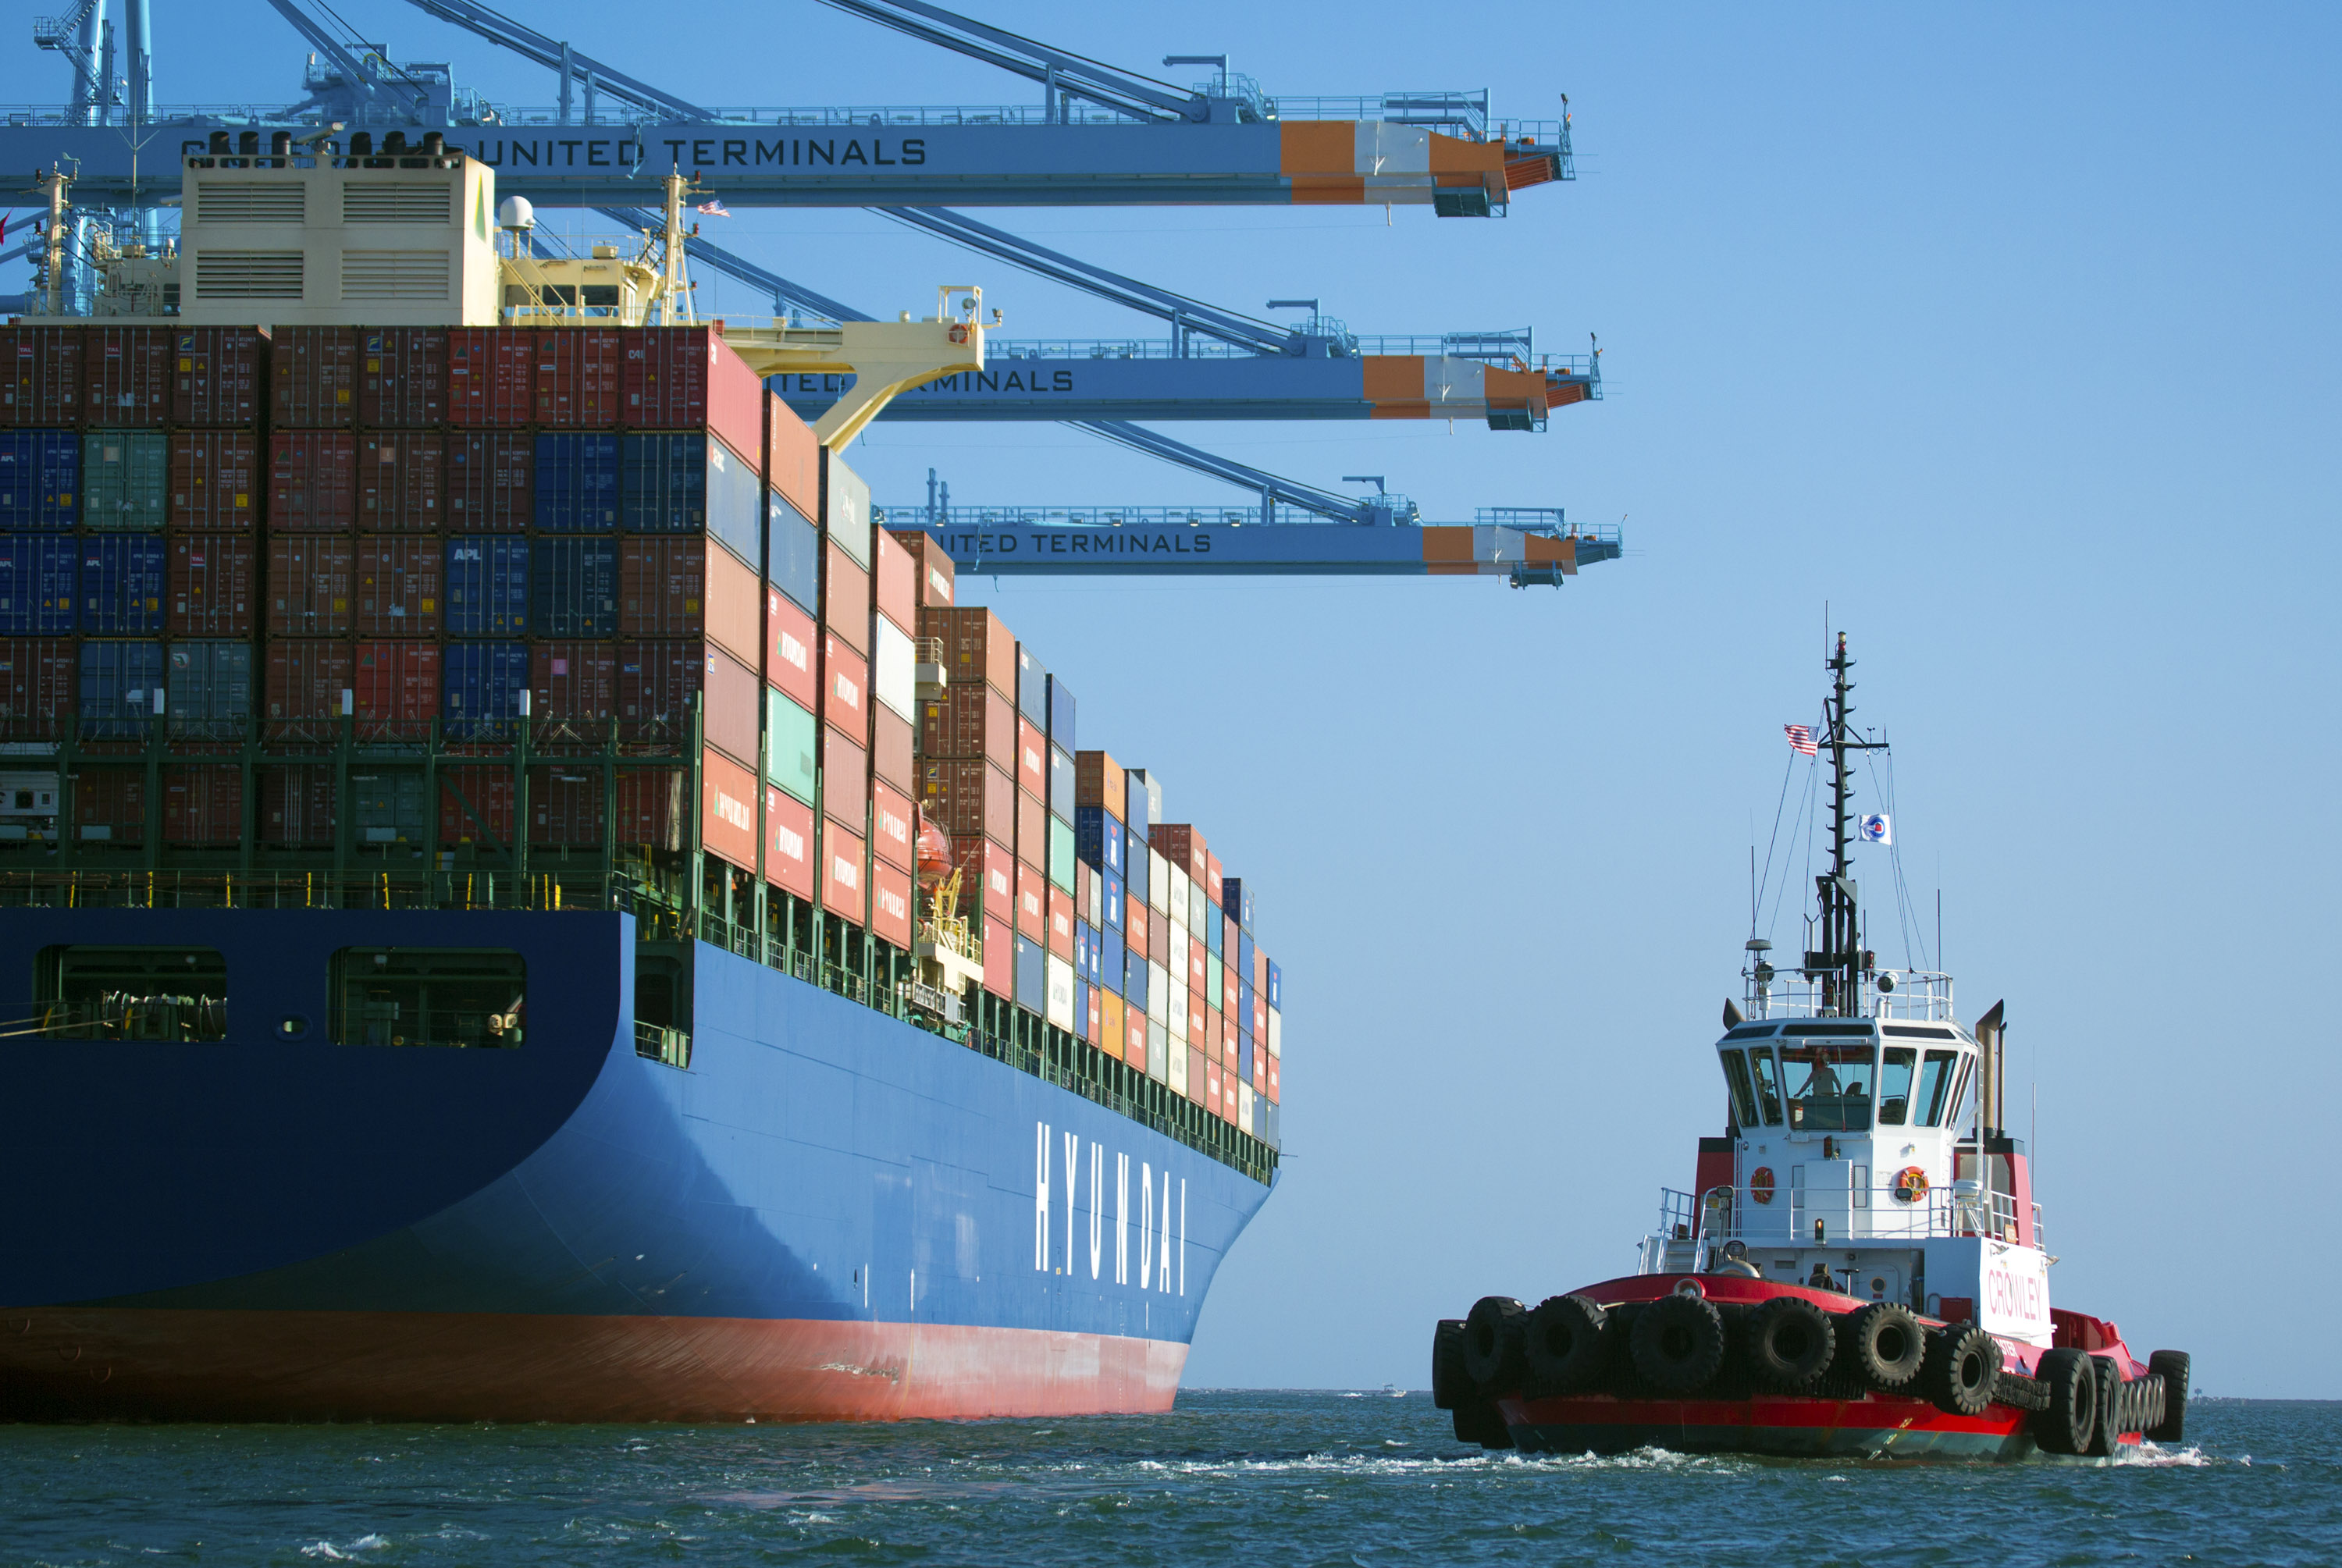 A tug boat moves into position with a Hyundai container ship in the Port of Los Angeles